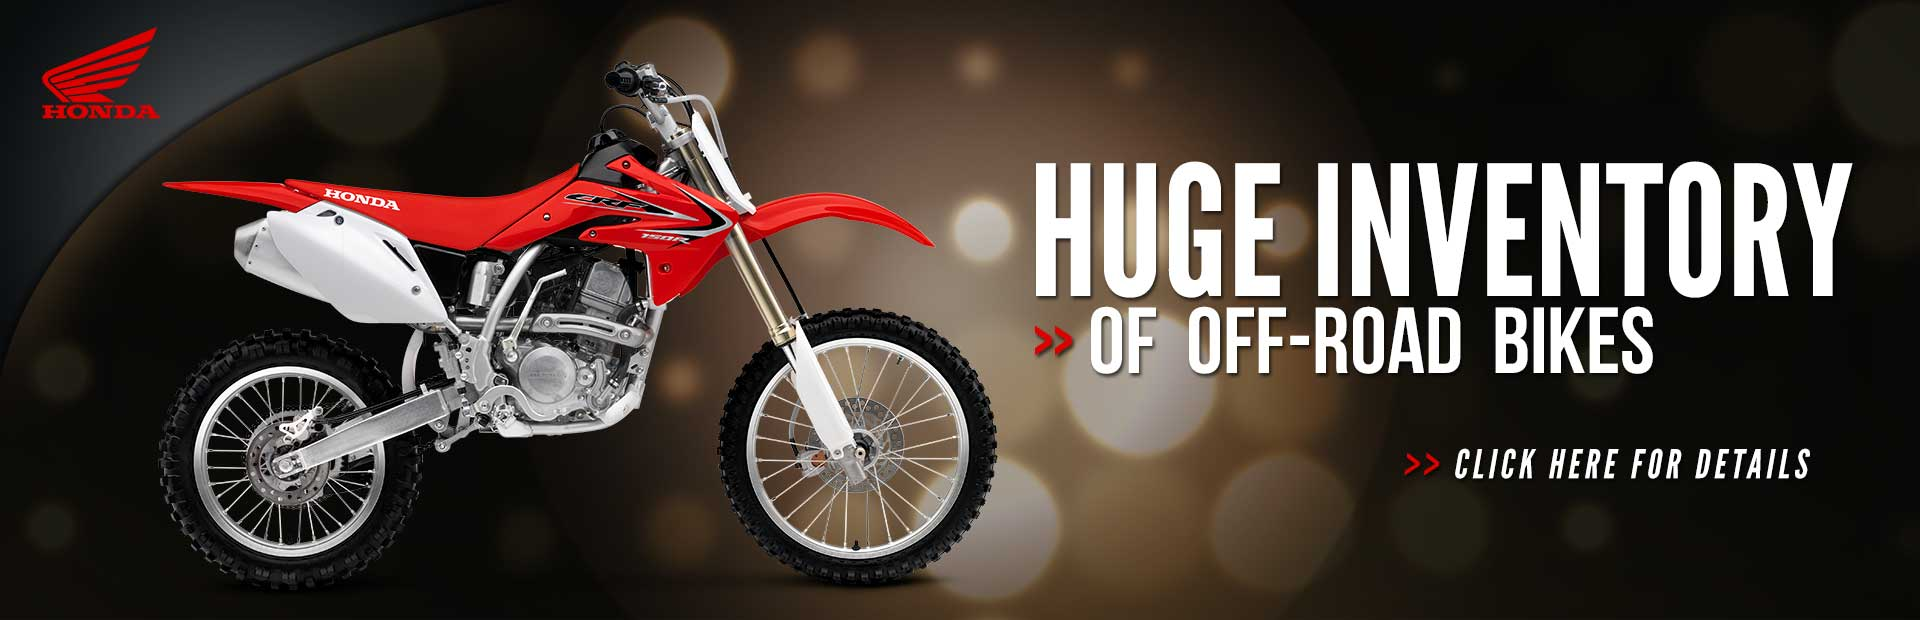 We have a huge inventory of Honda off-road bikes! Click here to see for yourself.